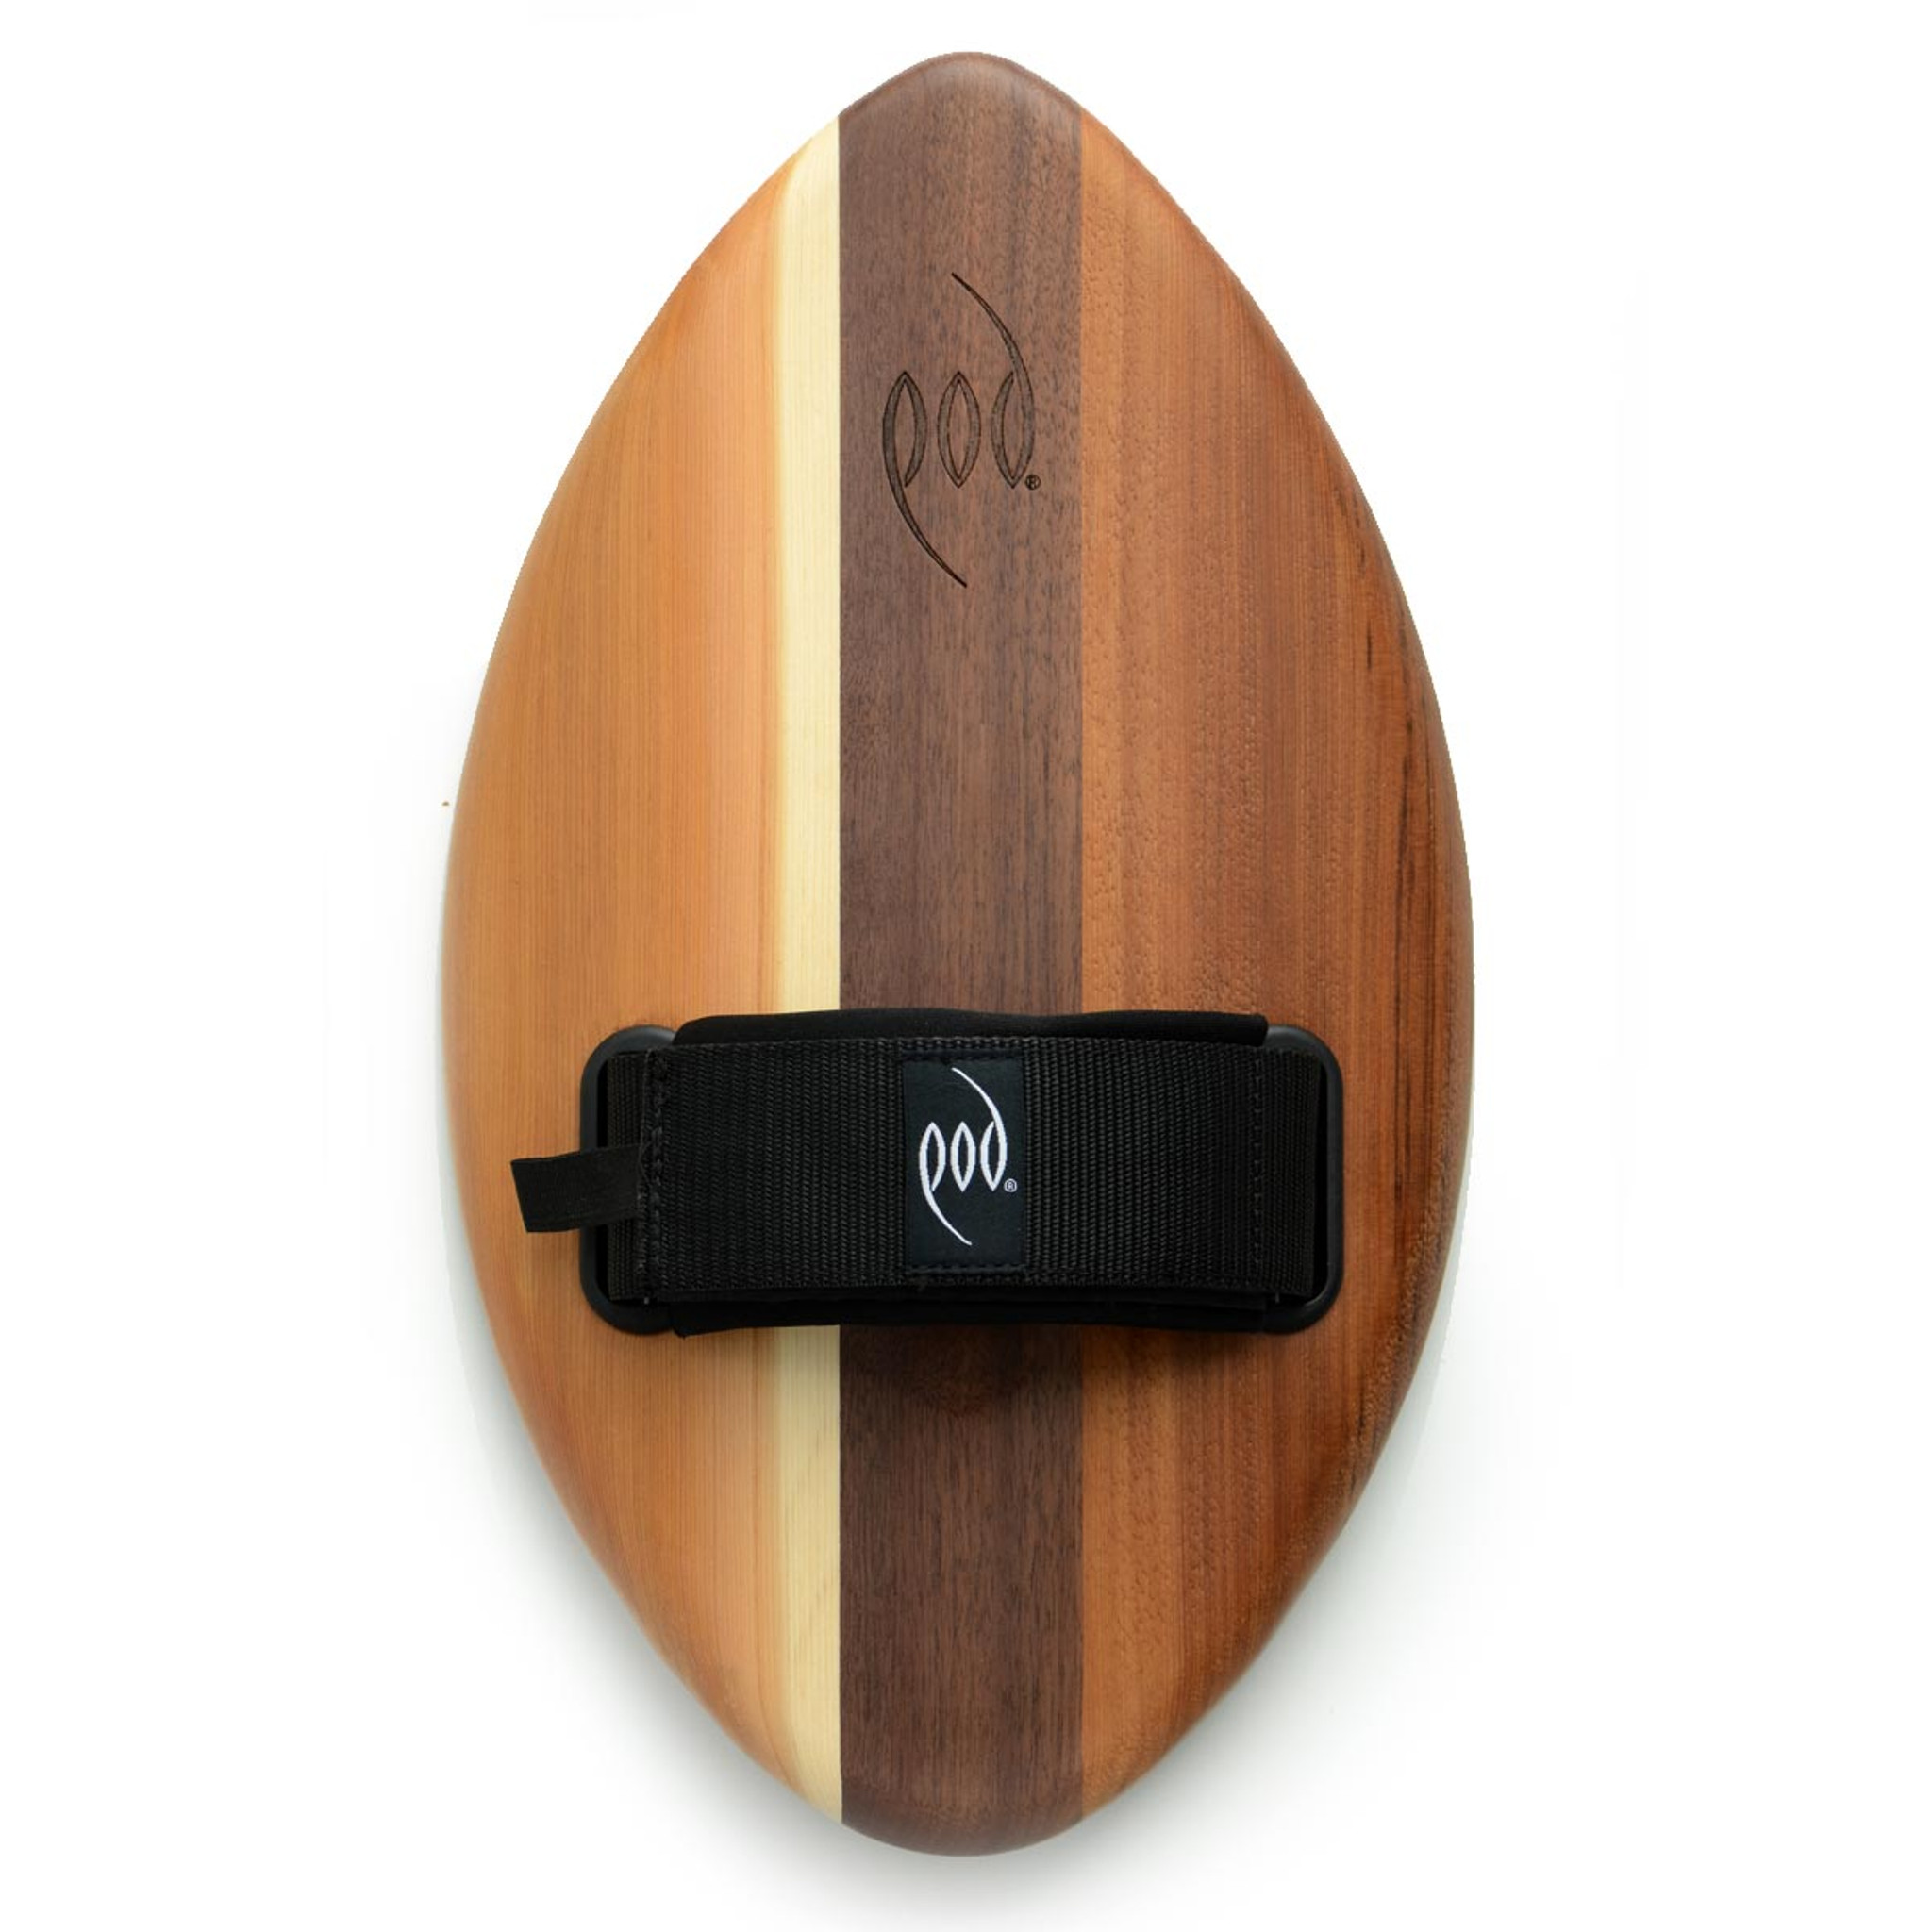 Premium Bodysurfing Gear – FLO Wood Handboard PF2s Savers